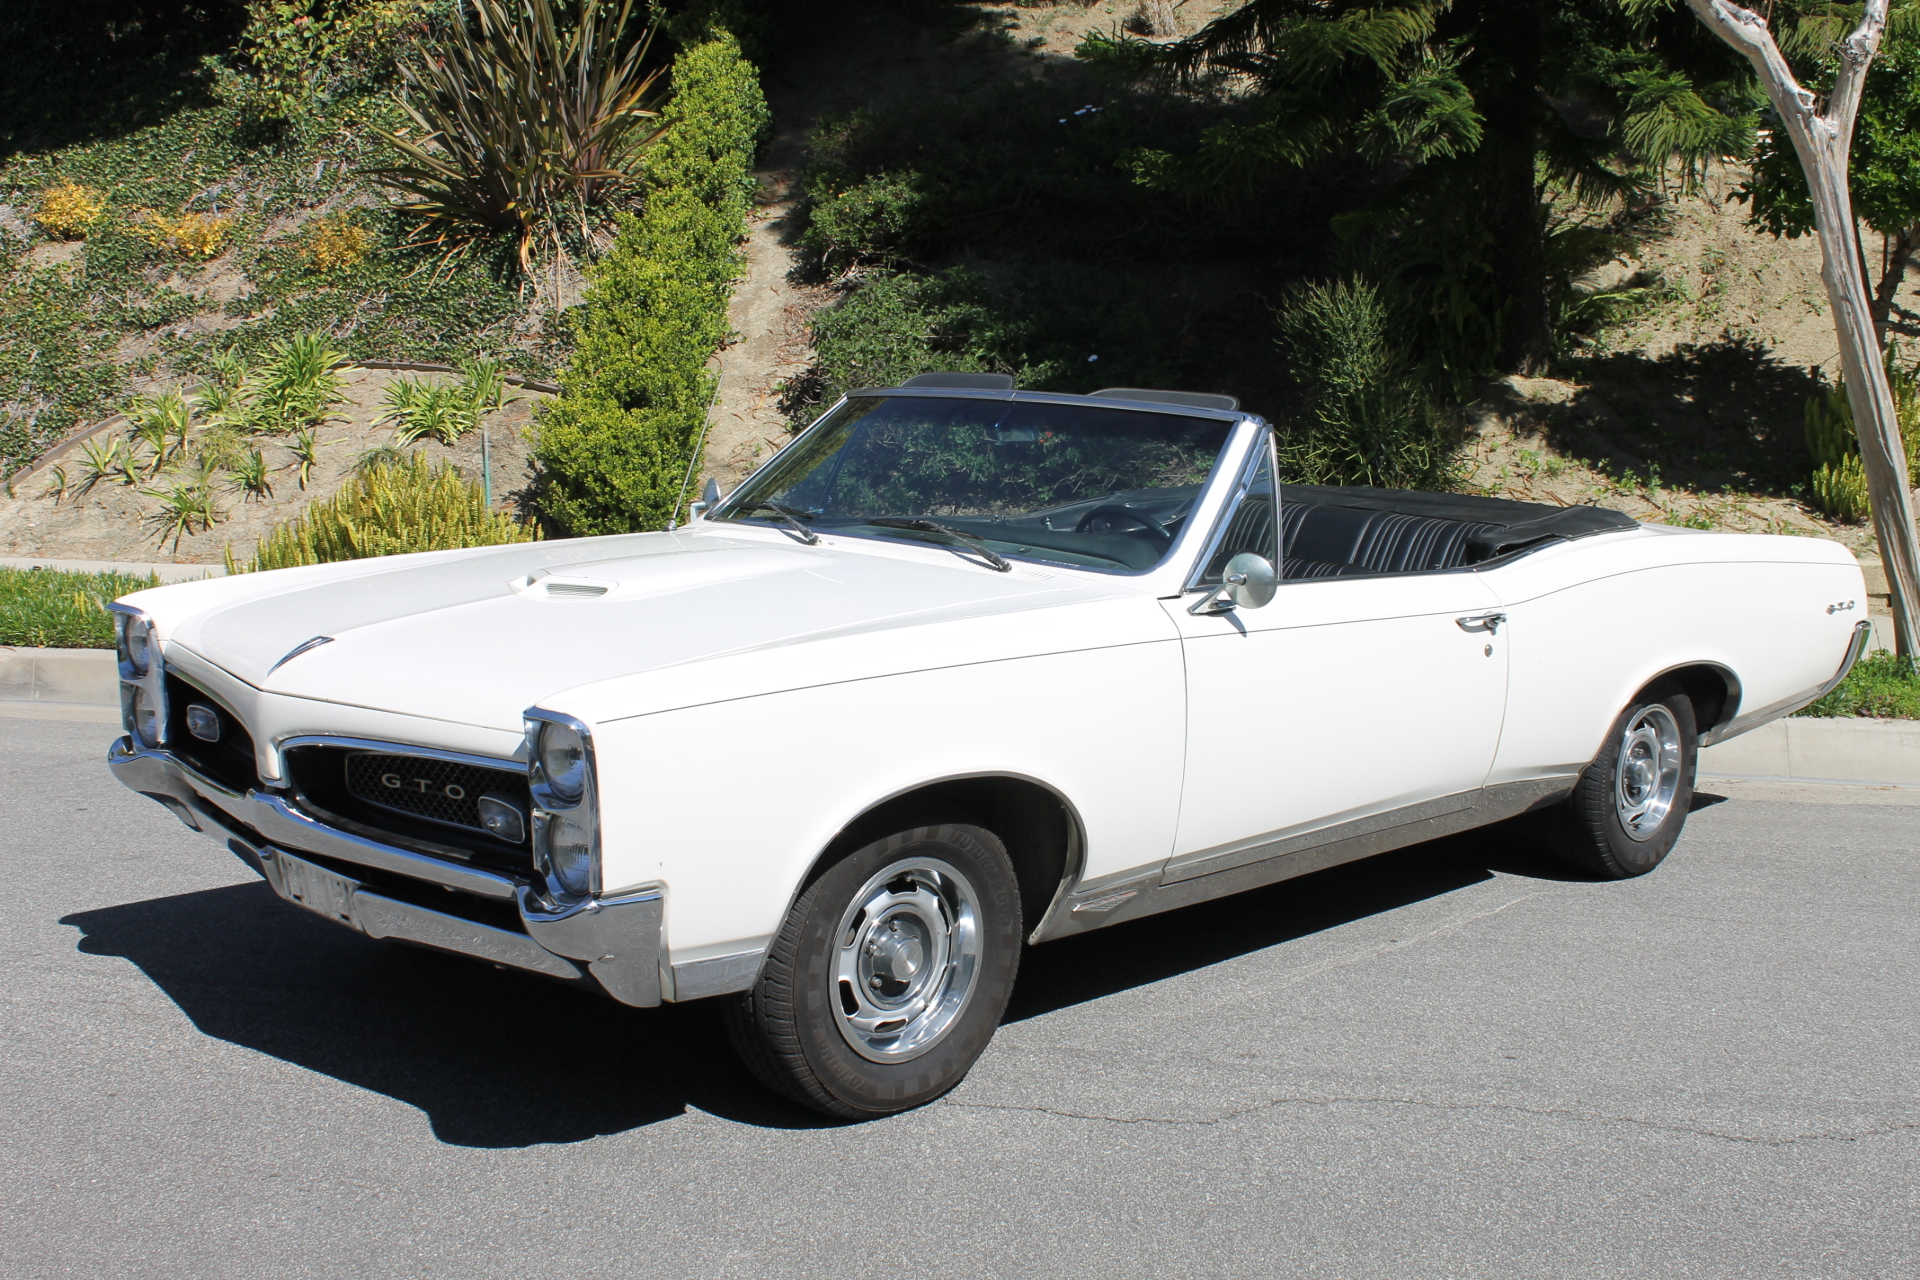 1967 GTO CONVERTIBLE | The Vault Classic Cars